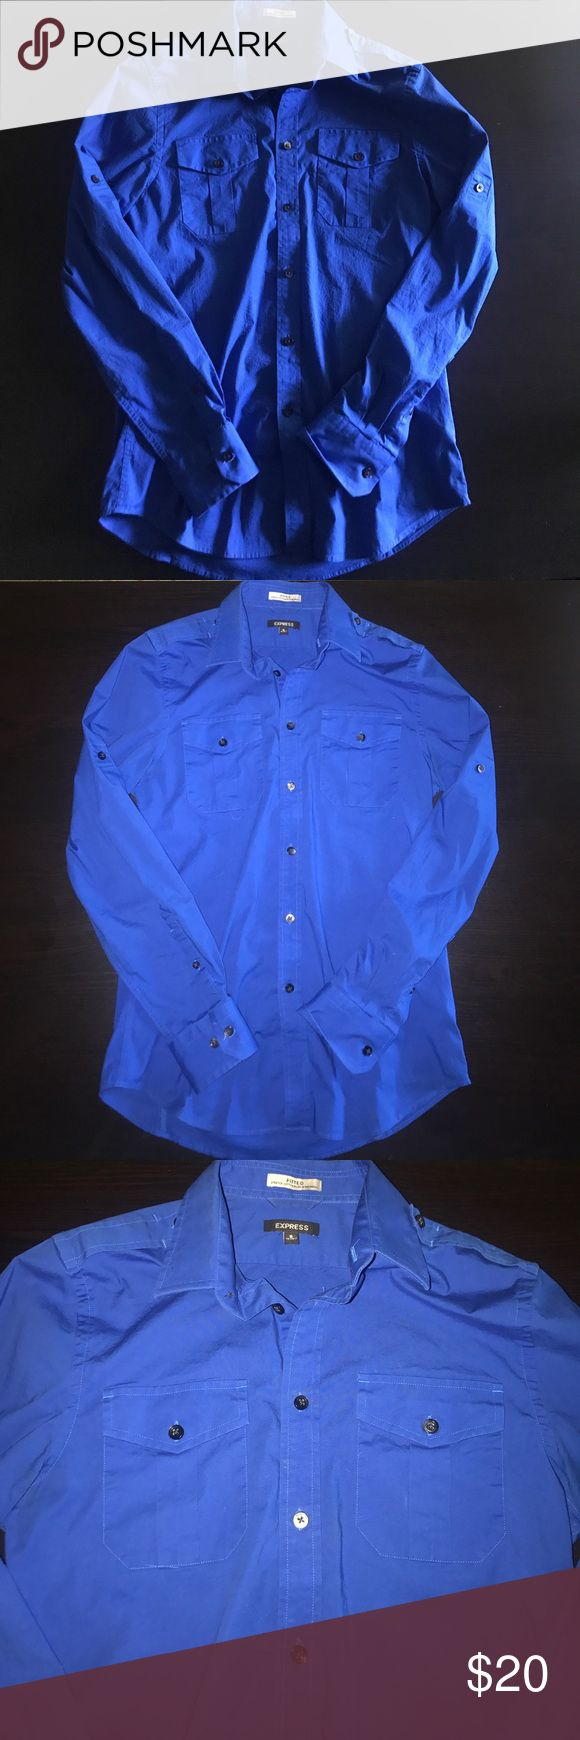 Express men's royal blue button down Royal blue express men's button down. It's a Fitted shirt with a stretchy material to it so it's very form fitting. It's been worn a bit but overall the shirt is in pretty good condition. No snags tears or stains to the fabric!! Express Shirts Dress Shirts